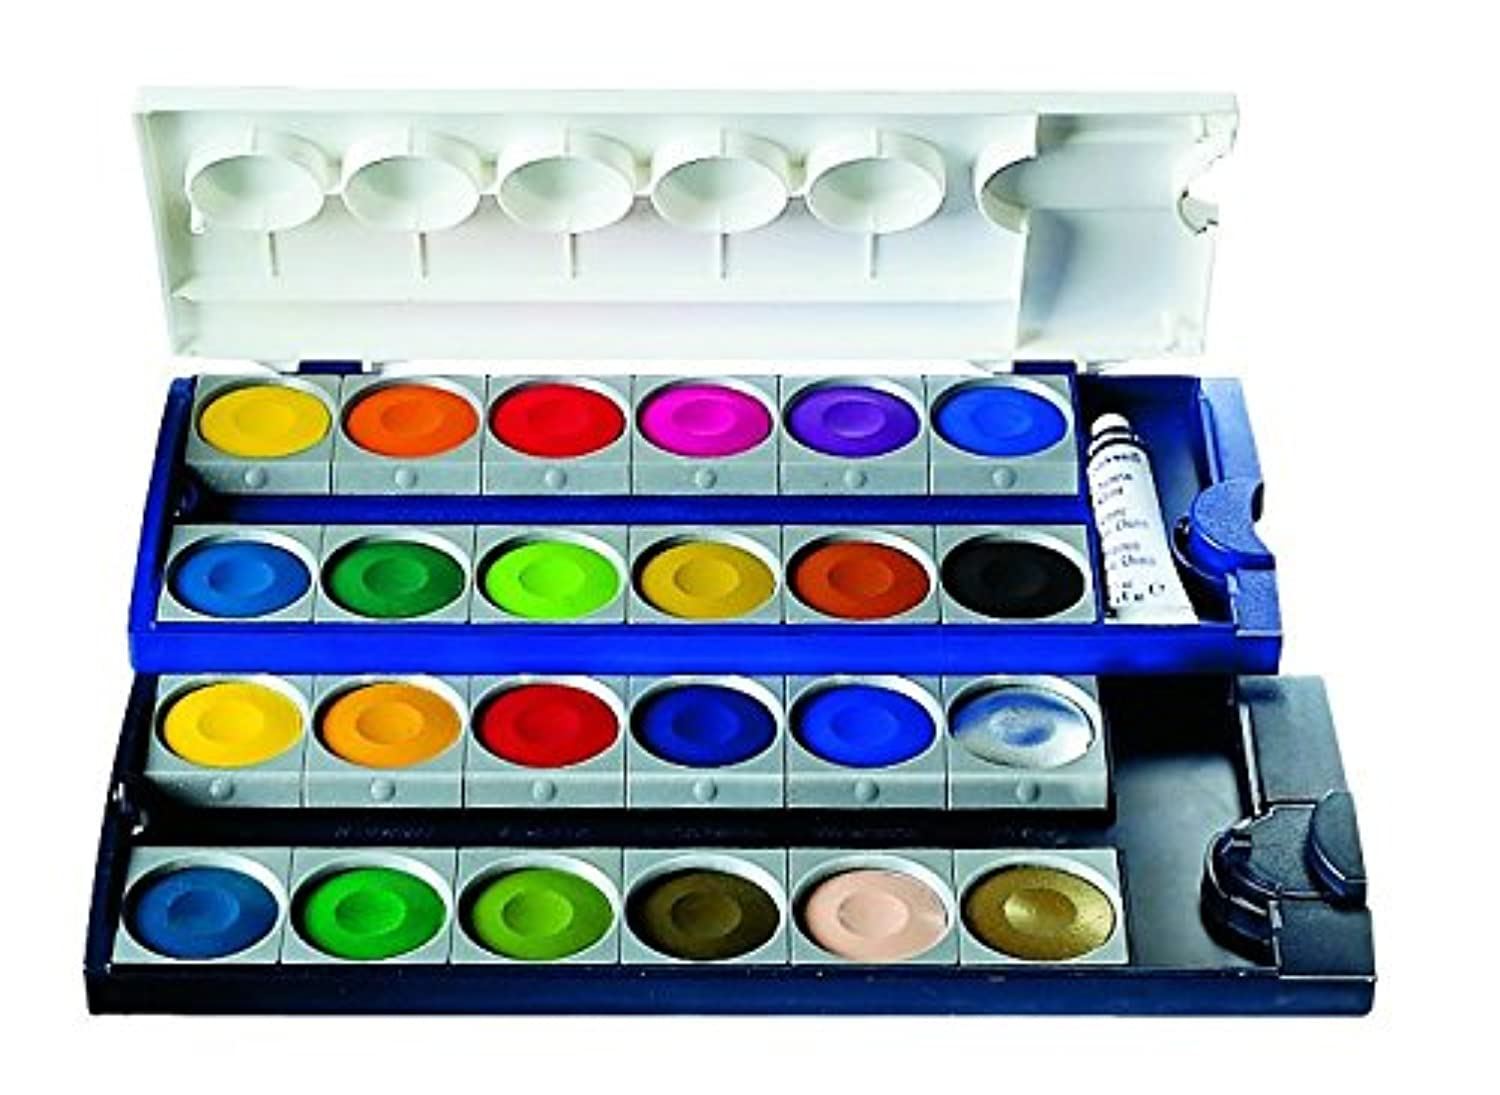 Pelikan Opaque Watercolor Paint Set, 24 Colors Plus Chinese White Tube (720862)